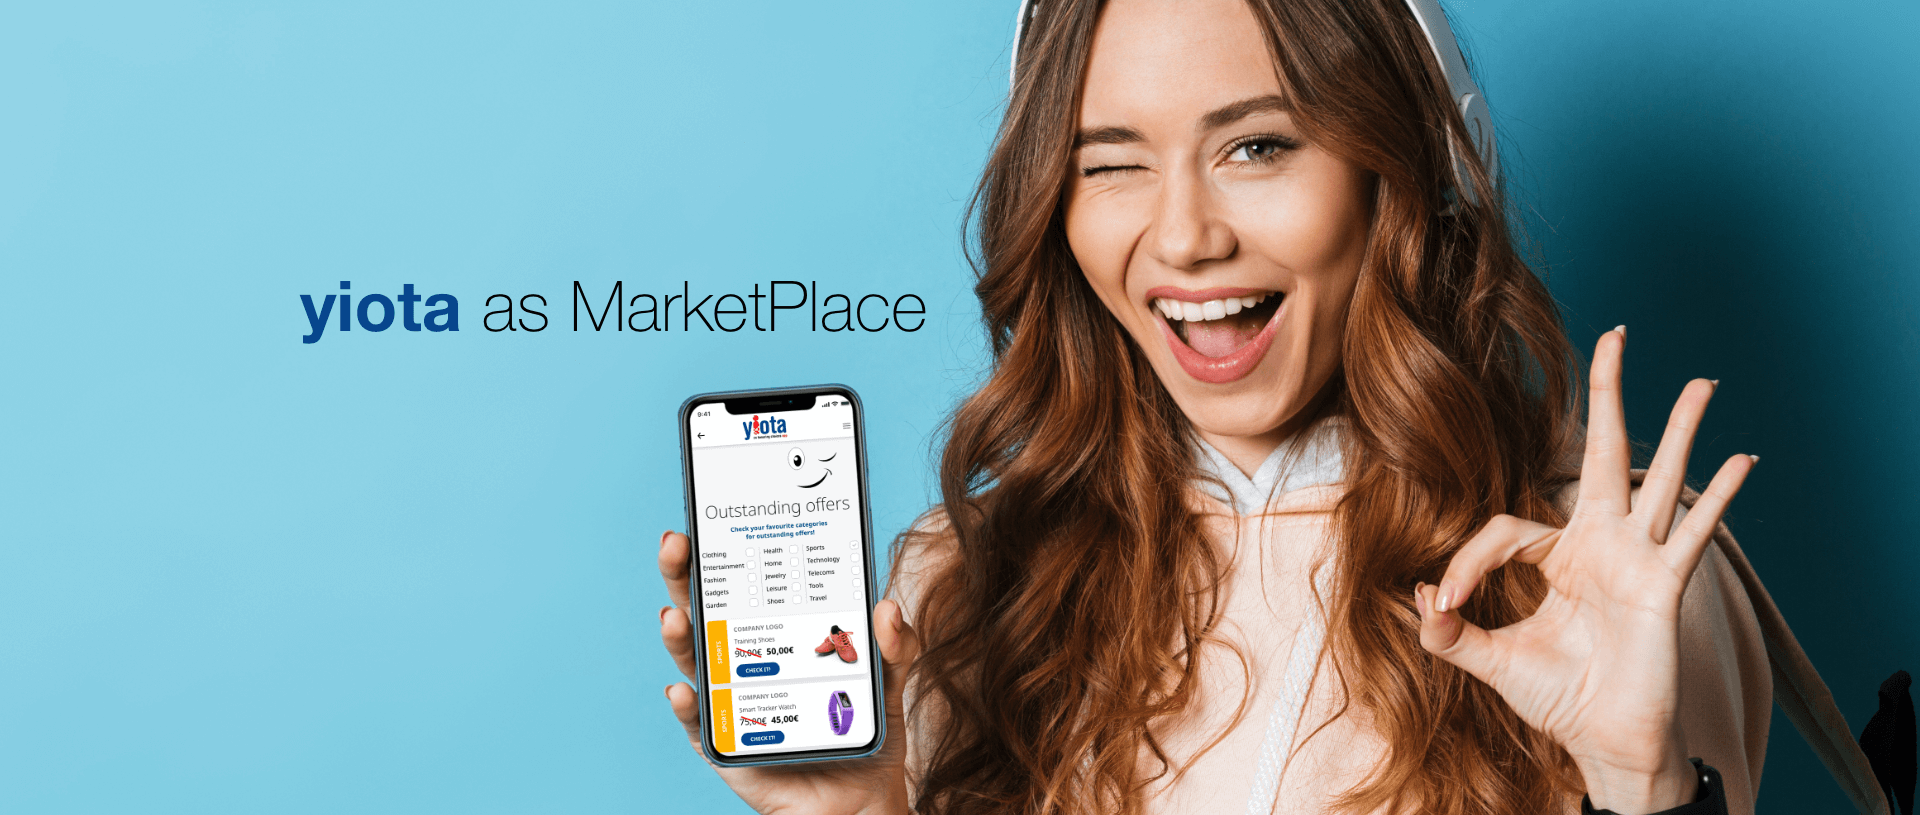 yiota as marketplace